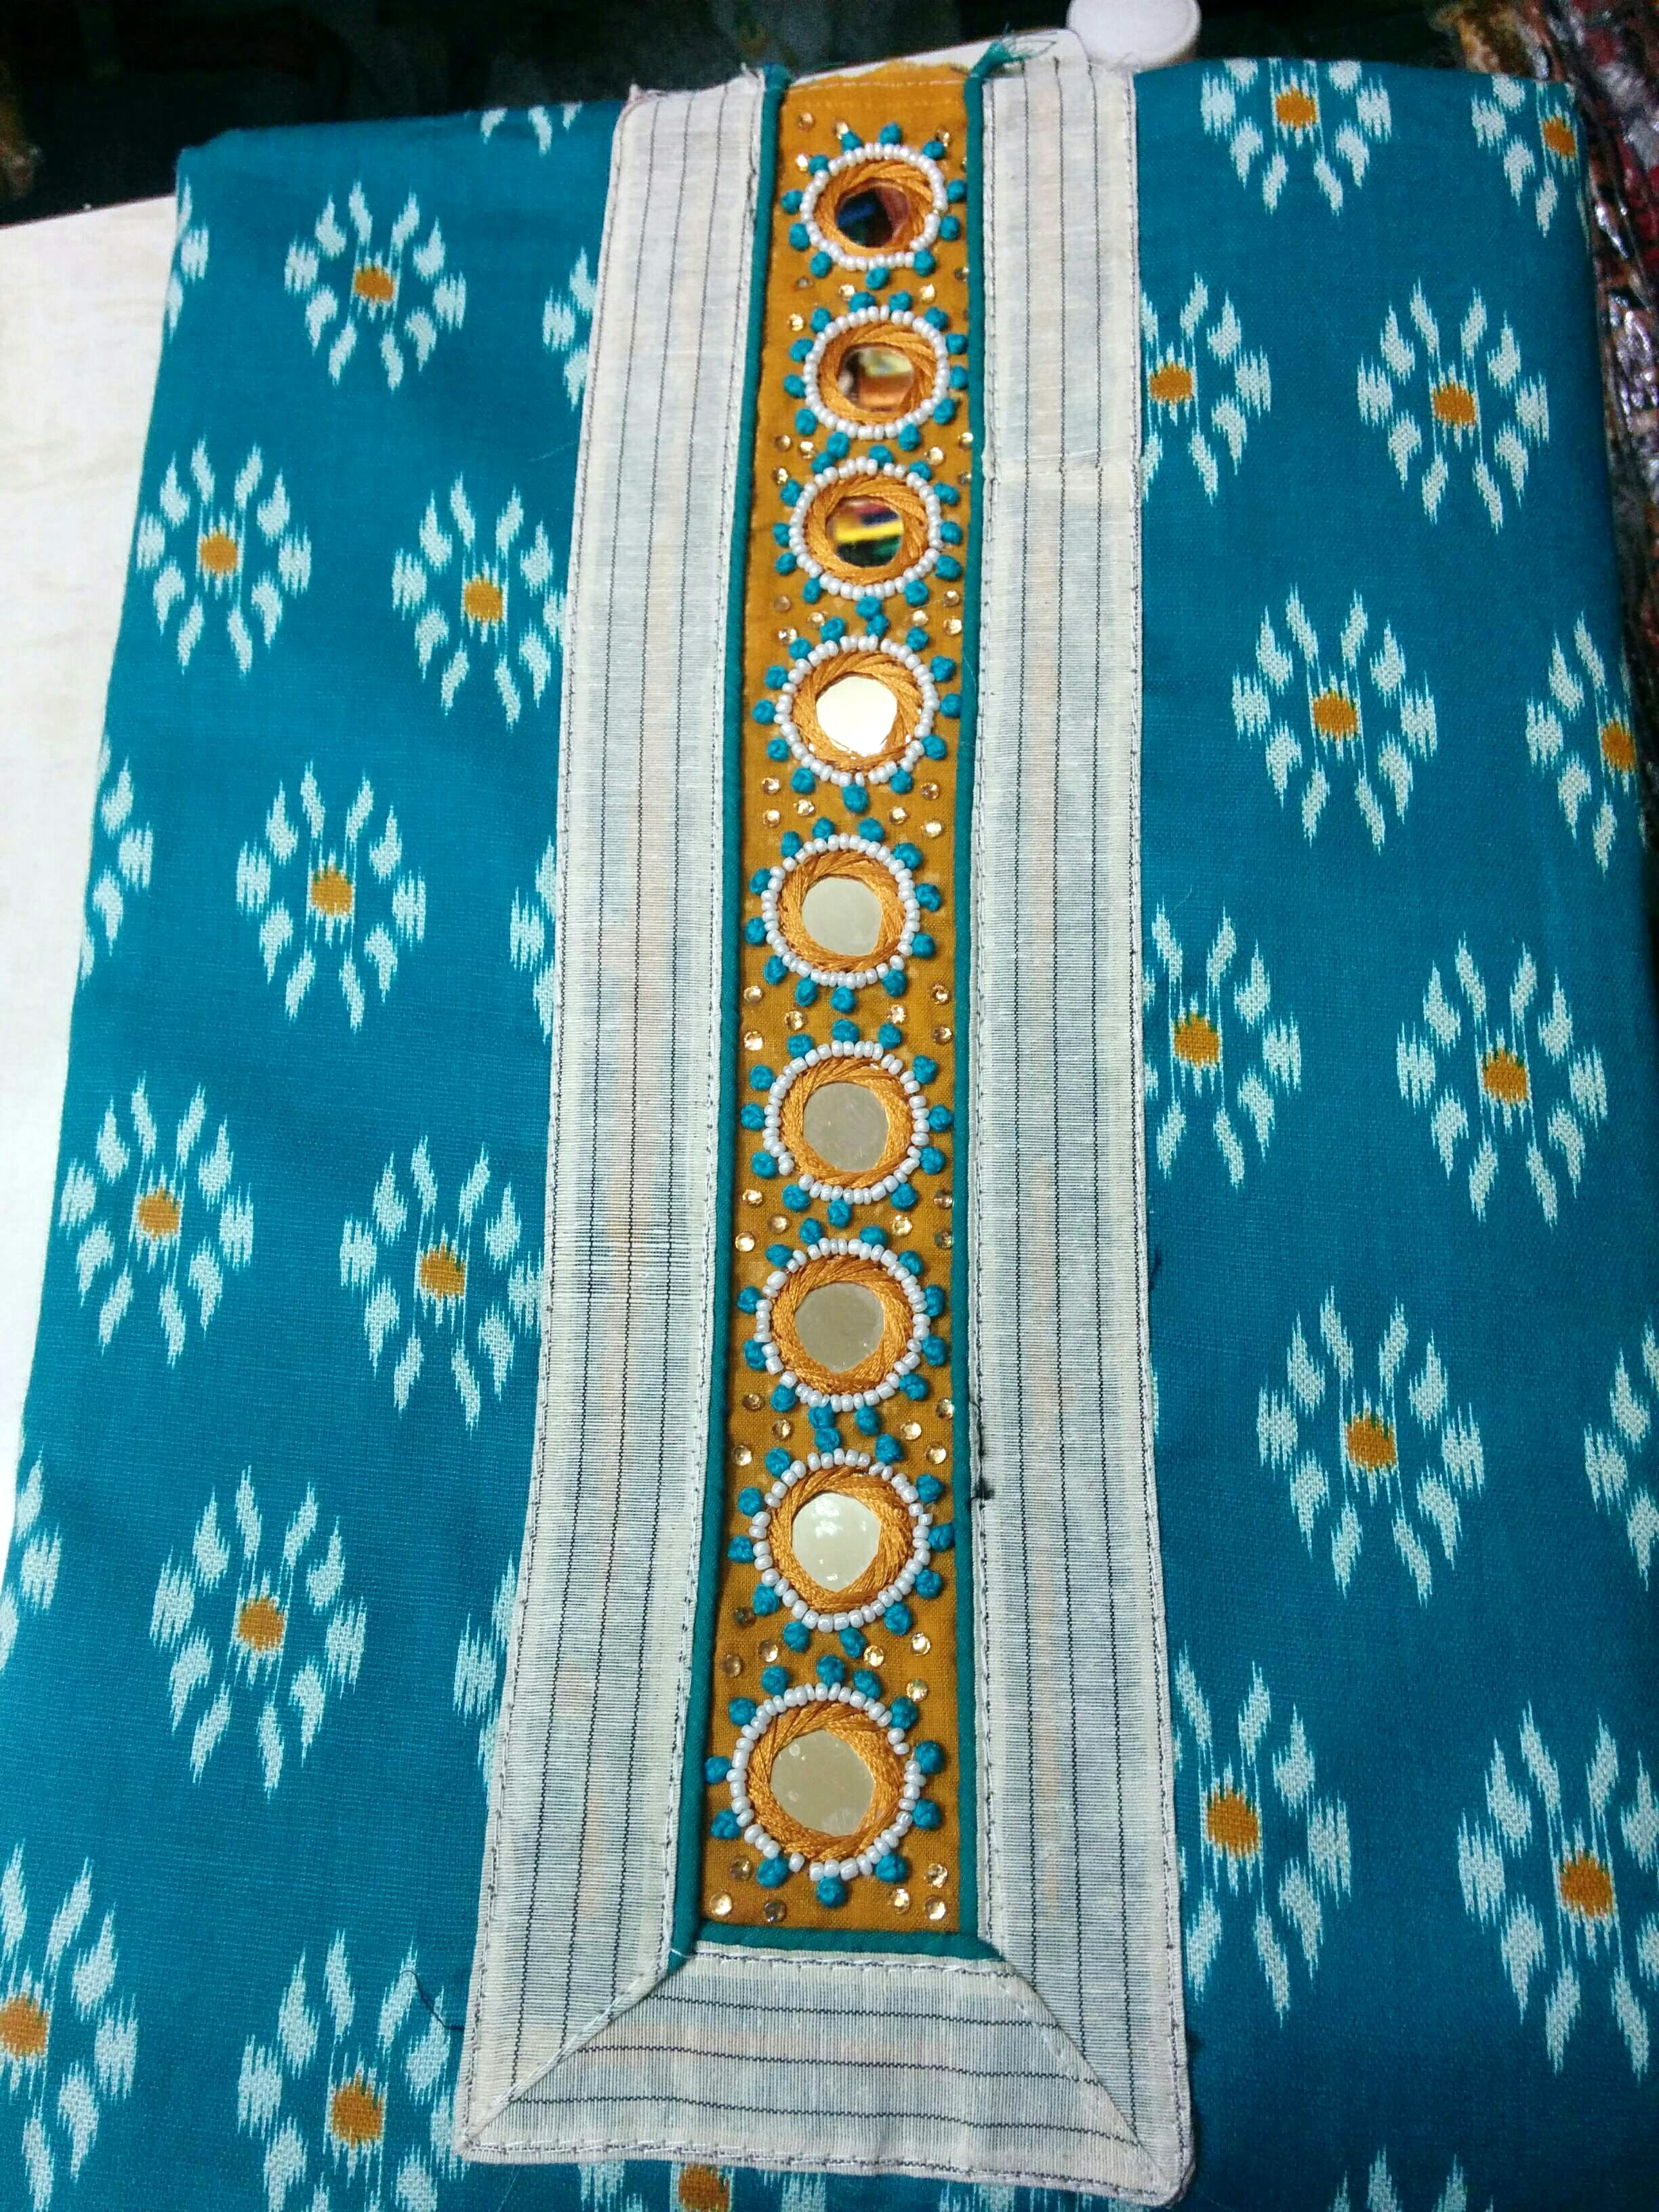 Aqua,Blue,Turquoise,Textile,Pattern,Visual arts,Motif,Electric blue